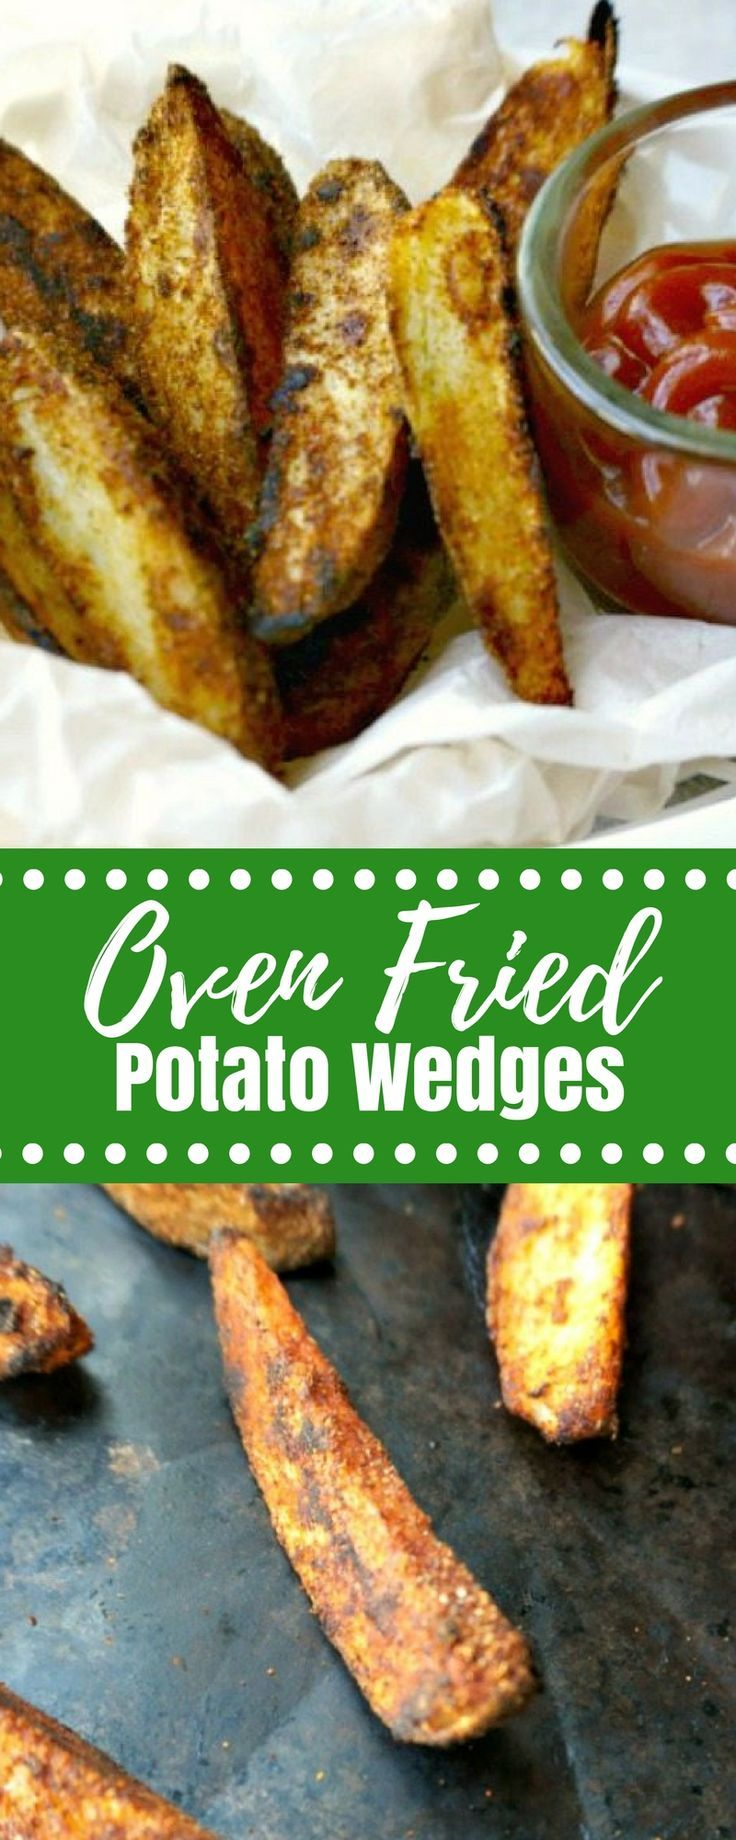 Oven Baked Potato Wedges: Wedges of thickly sliced potatoes that have been coated with a special seasoning blend and and then  oven fried for a crisp exterior and perfectly tender filling on the inside. This is my healthy spin on a fried classic! #sidedish #potatoes #fries via @amindfullmom